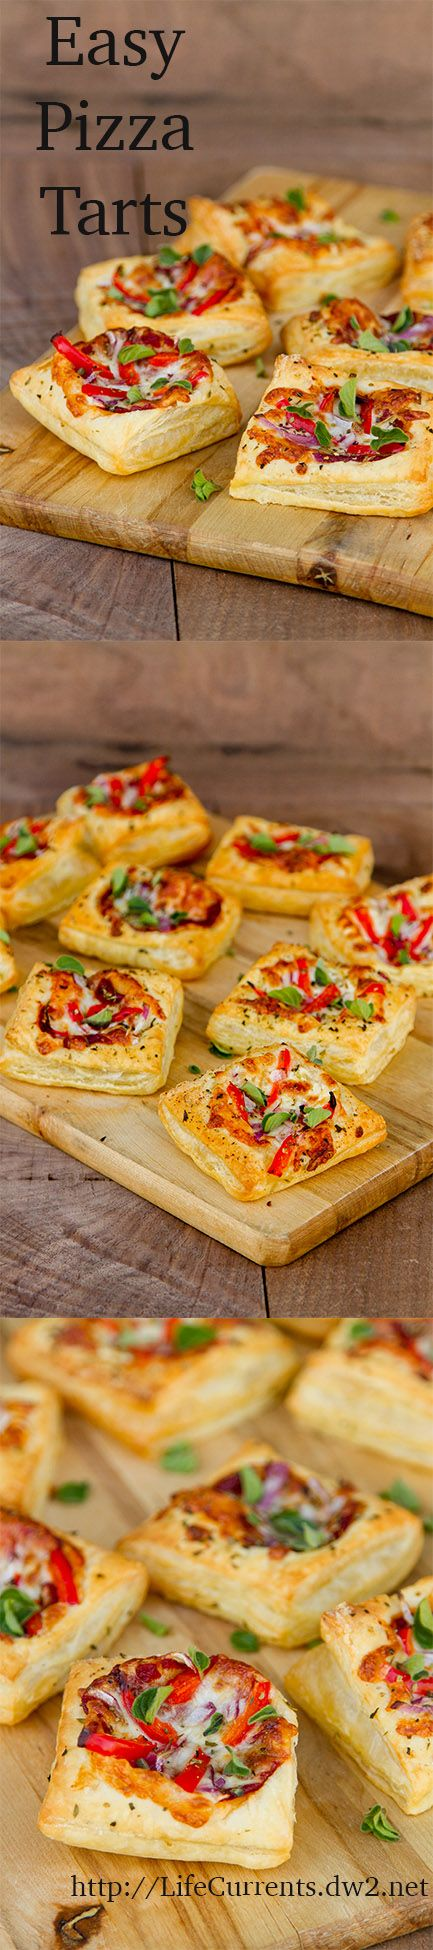 Easy, tasty, quick to put together and bake up, these Pizza Tarts with two variations, Classic (traditional) or Pizza Blanco (white pizza), are super yummy! And, they make a great tailgating snack!